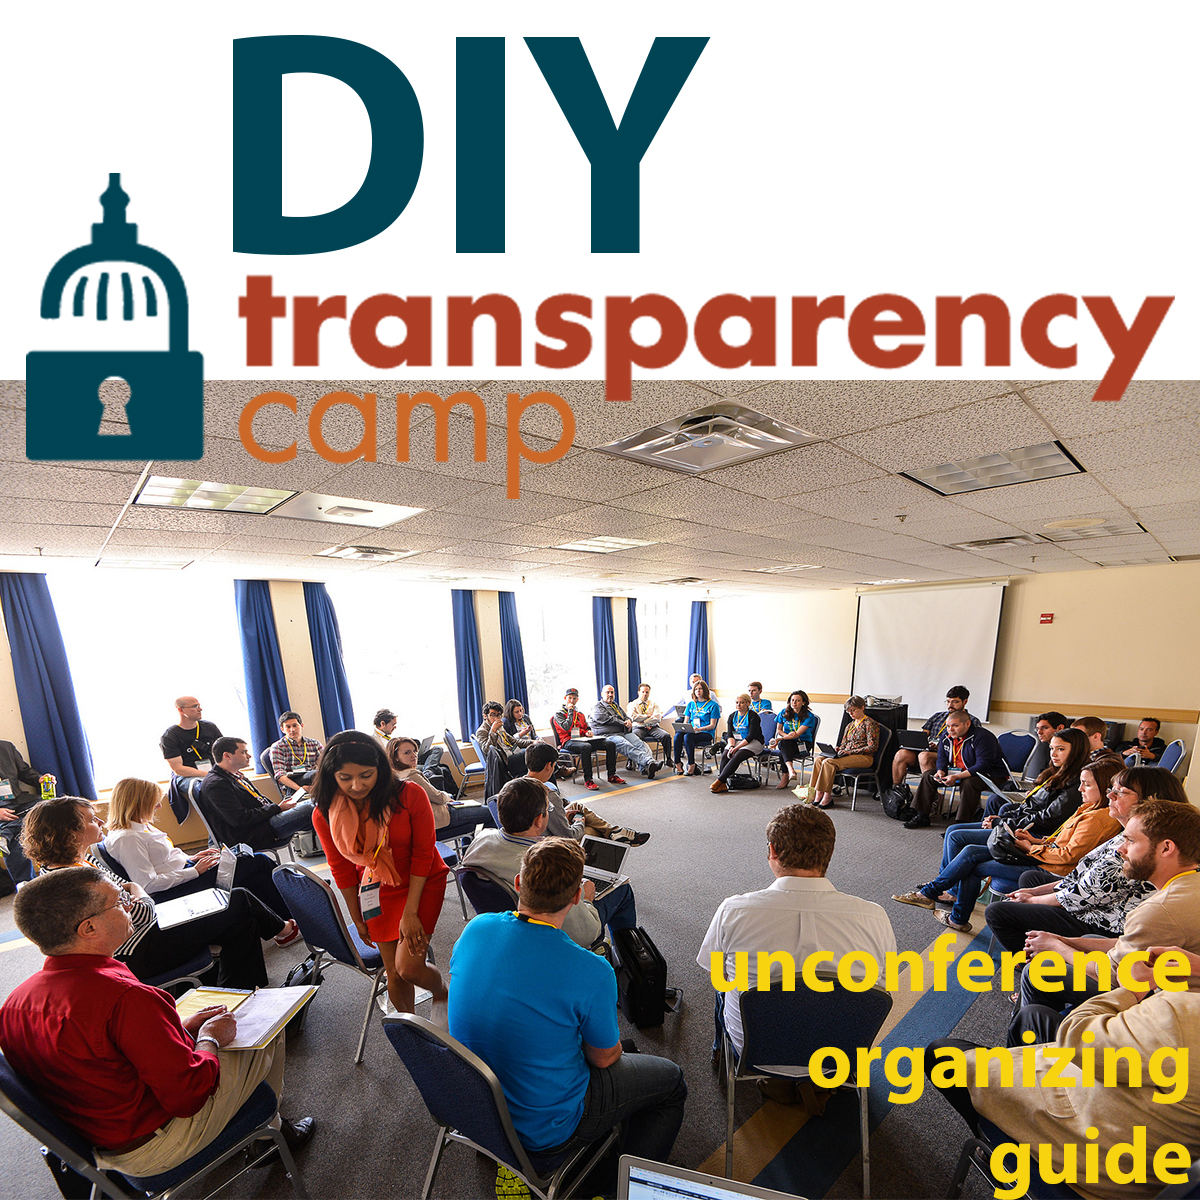 In July 2012, I took the frameworkwe used to organize  TransparencyCamp , the Sunlight Foundation's annual community event, and shared them publicly. This comprehensive organizing packspans two sections, unconference administration and basic structural/outreach tips, and is intended for first-time organizers and veterans alike.    You can download the PDF version here  . Other formats available at http://transparencycamp.com/how-to.